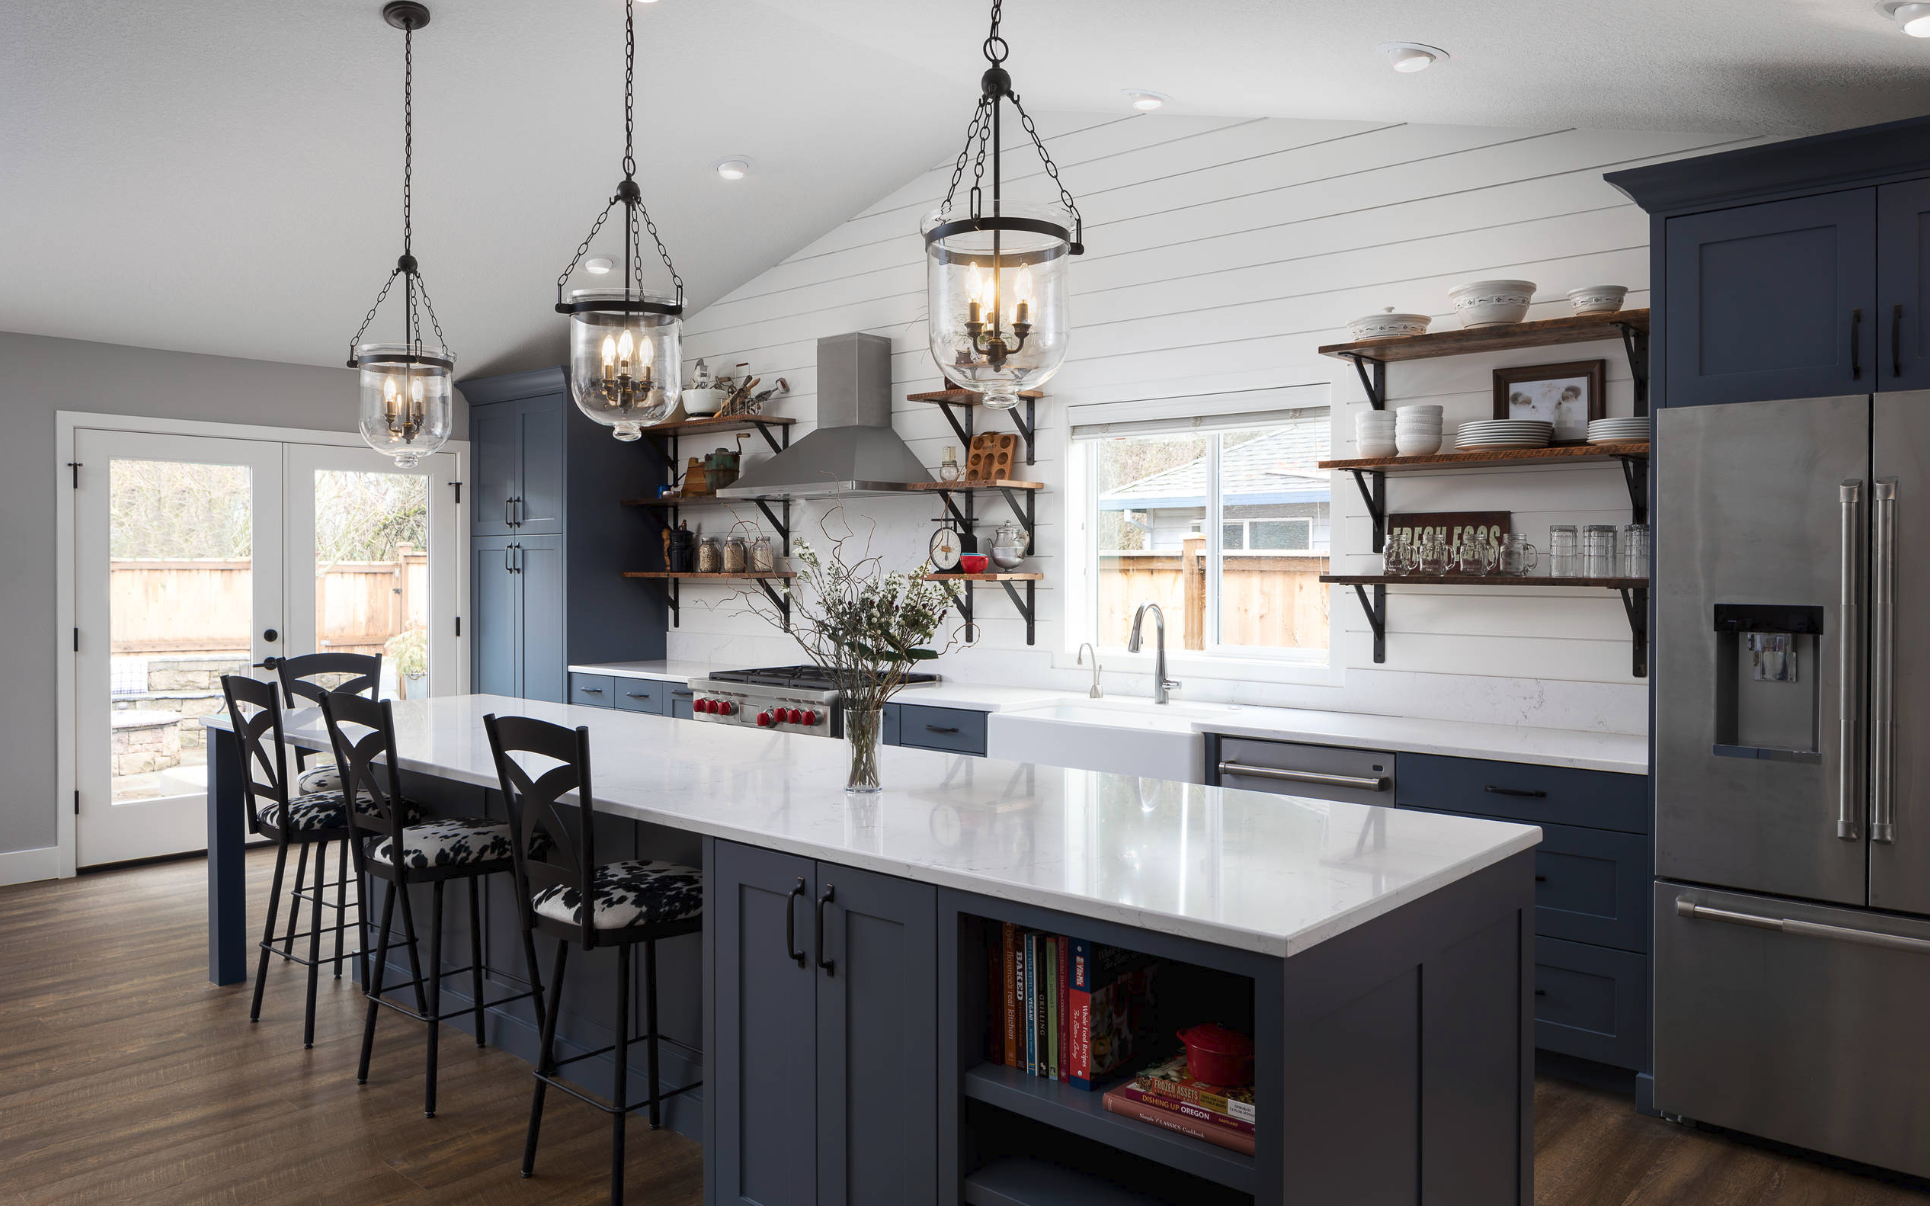 Here Are 10 Modern Farmhouse Kitchen Ideas to Inspire You